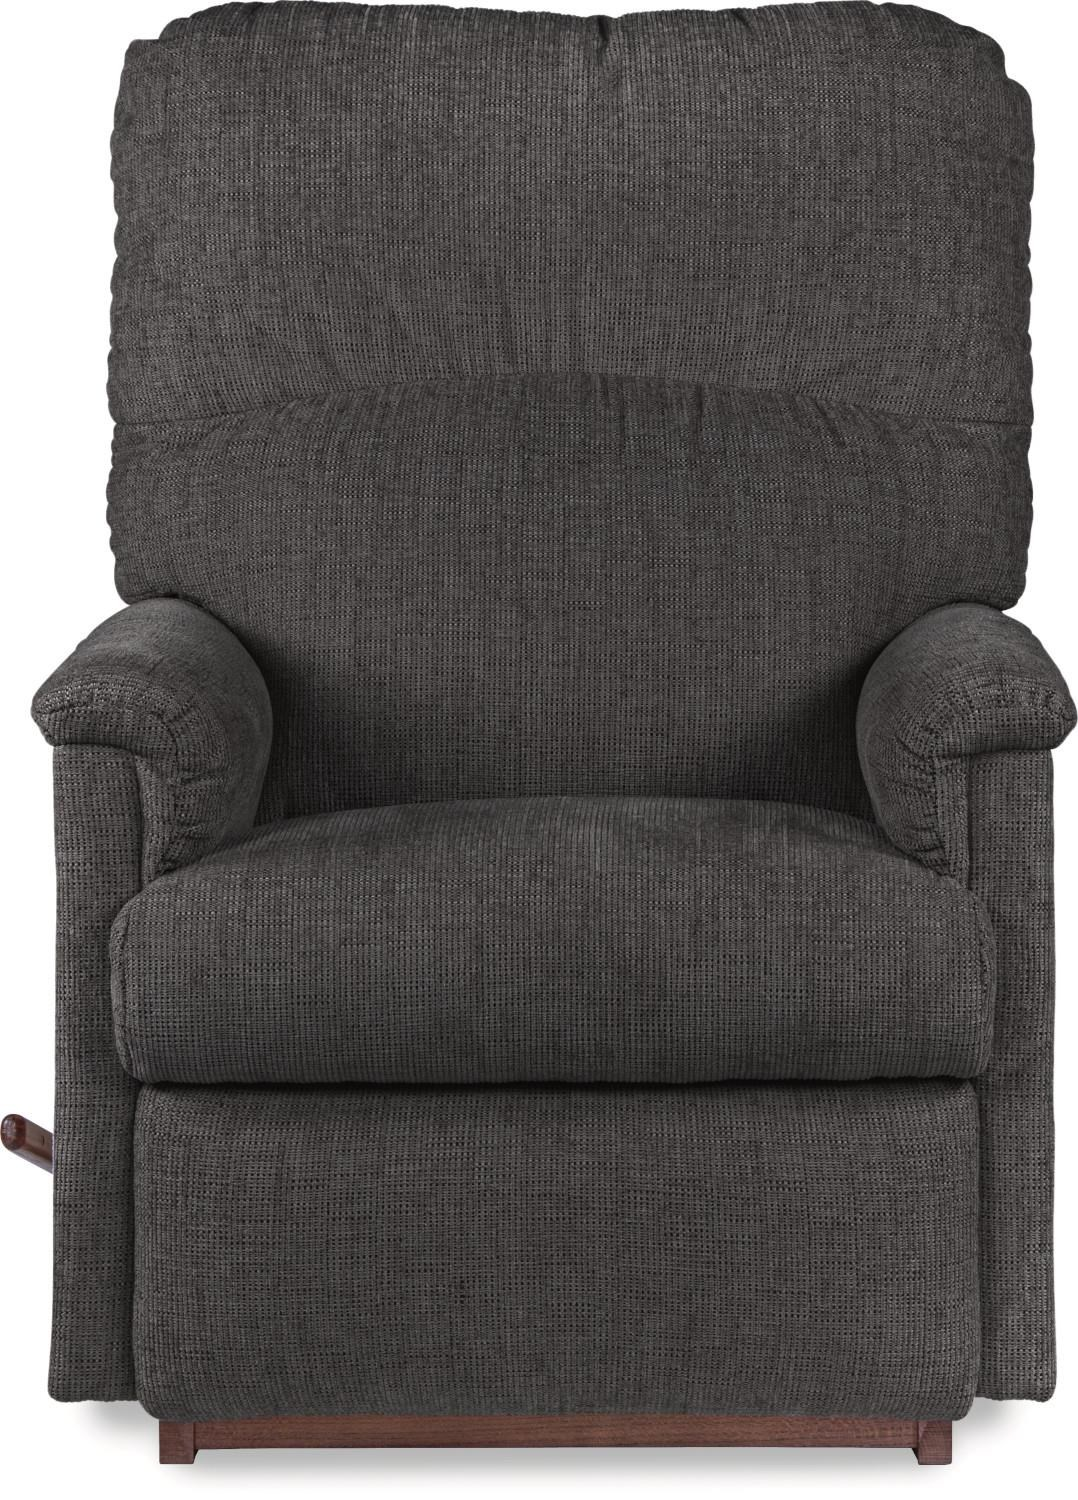 Collage Rocker Recliner by La-Z-Boy at Bennett's Furniture and Mattresses